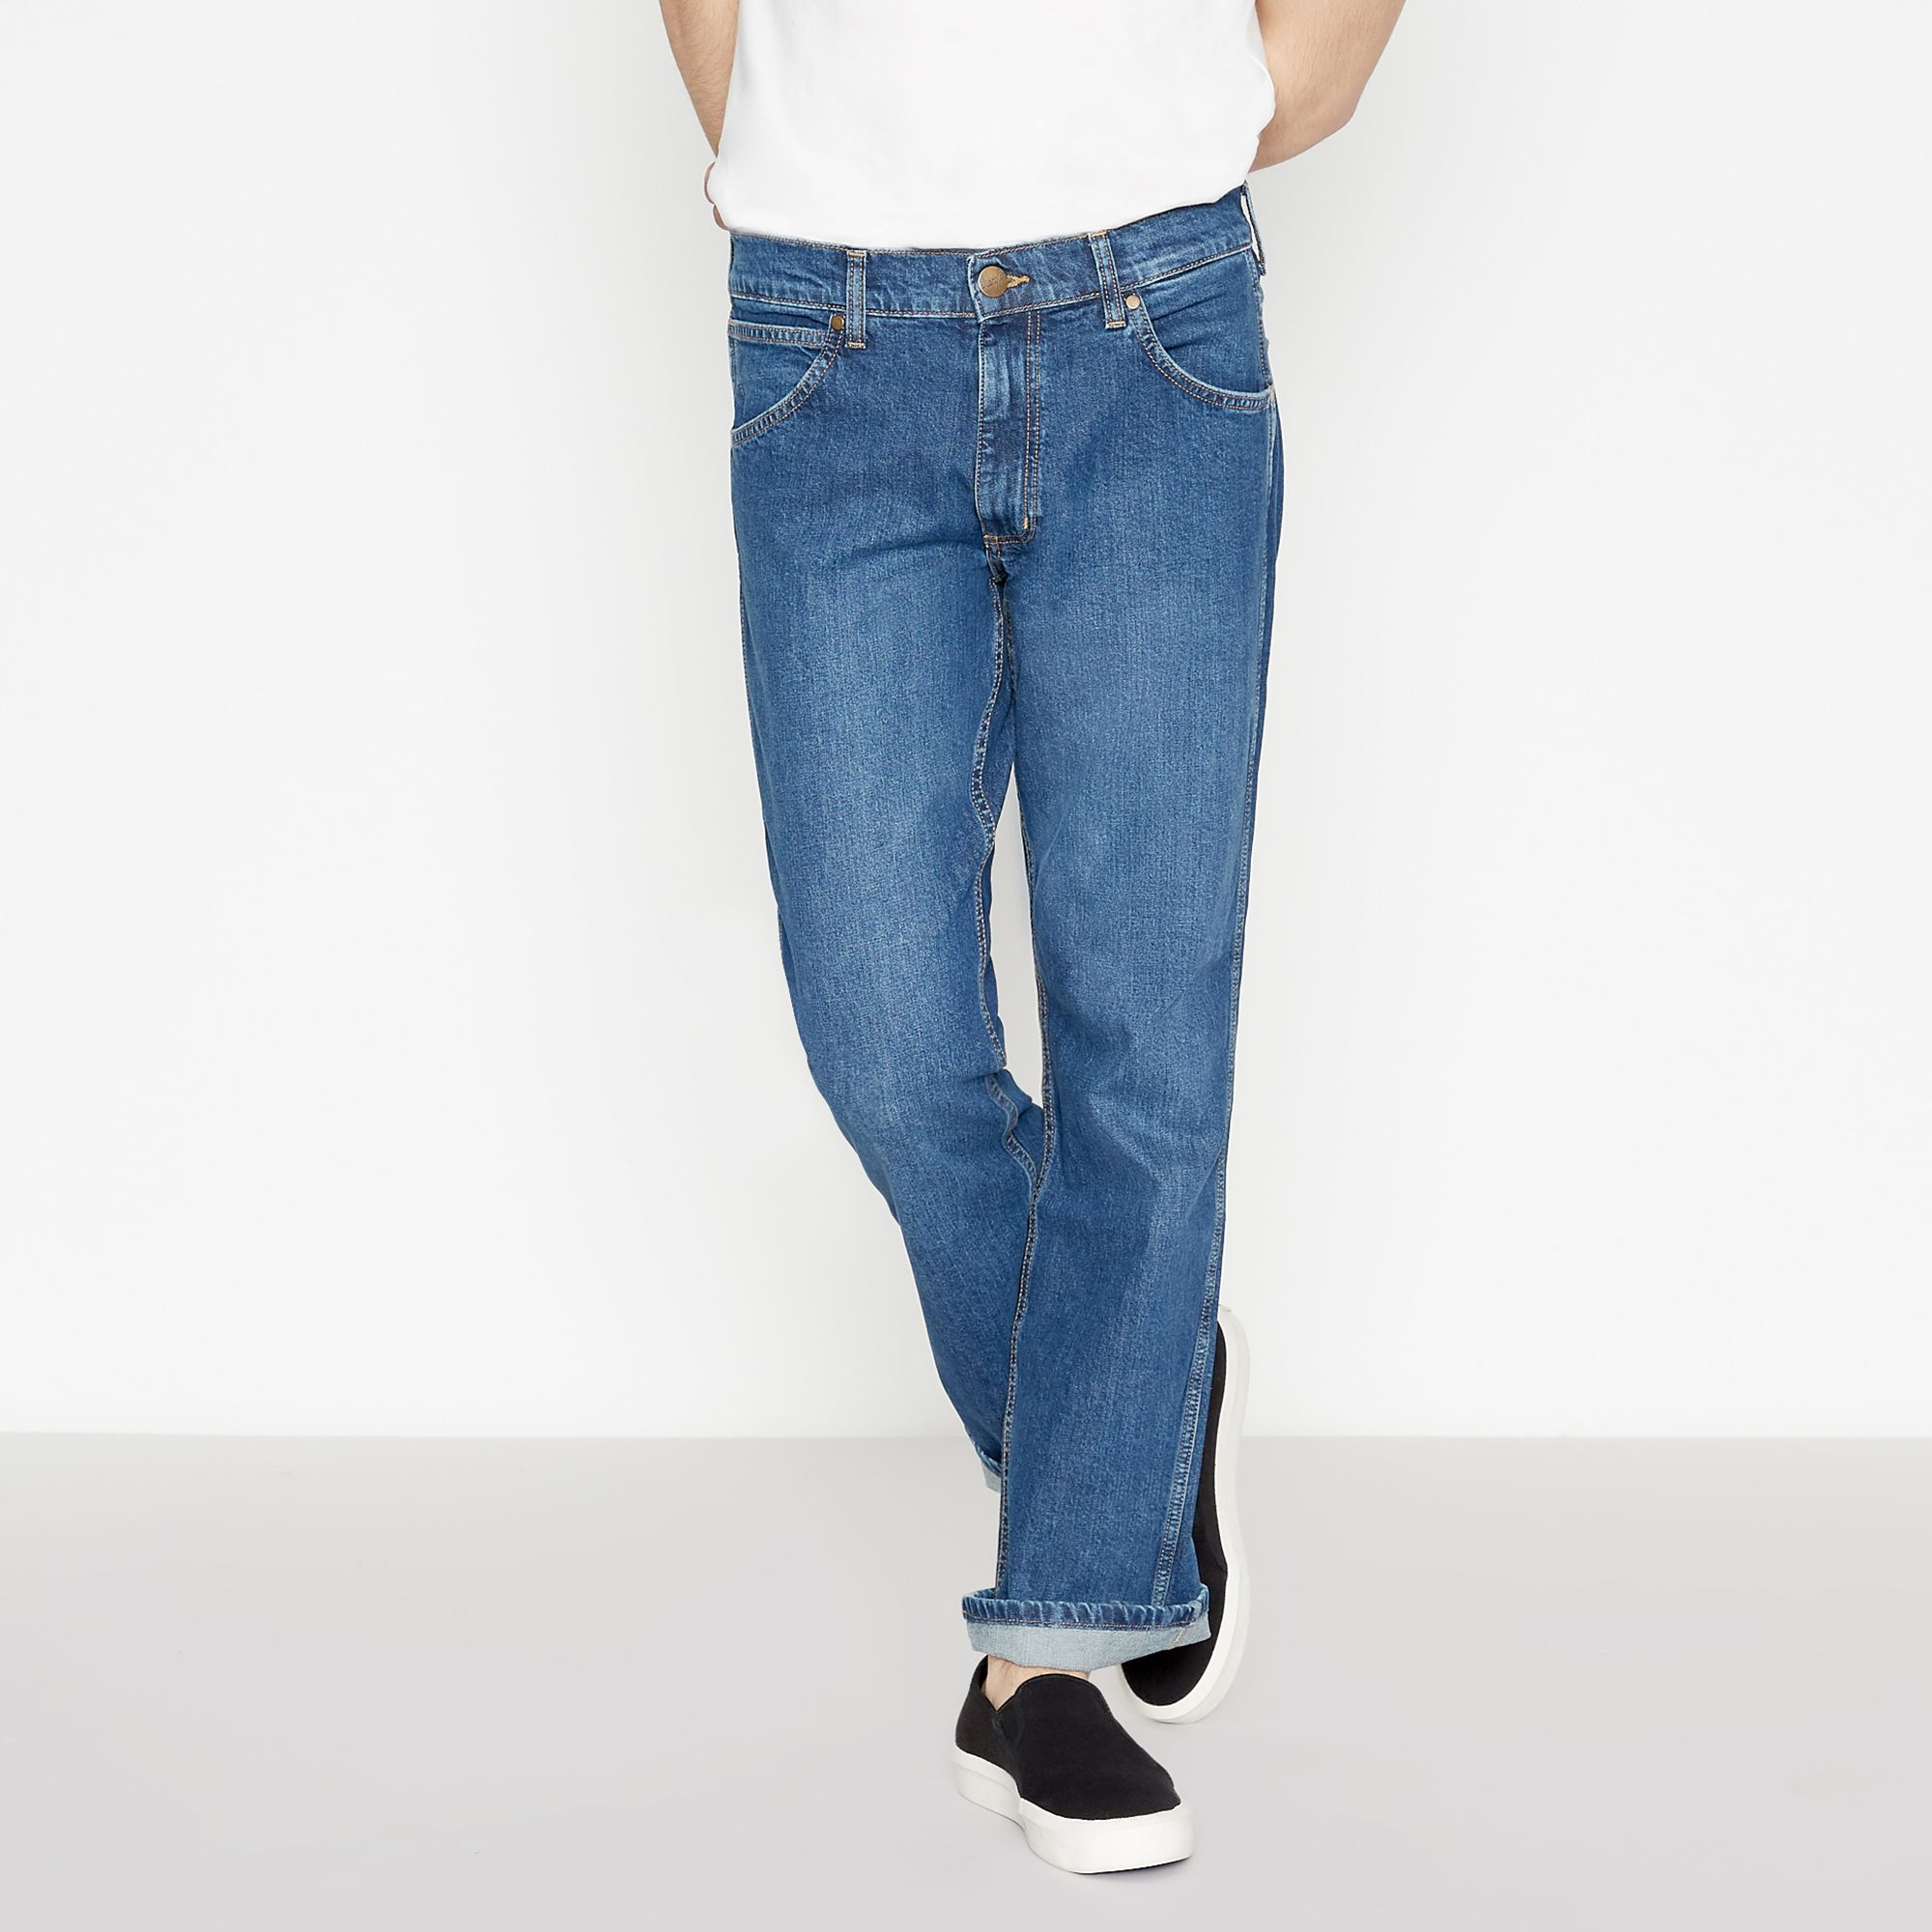 8a1c74e17fc Details about Wrangler Men Big And Tall Blue 'Jacksville' Bootcut Fit Jeans